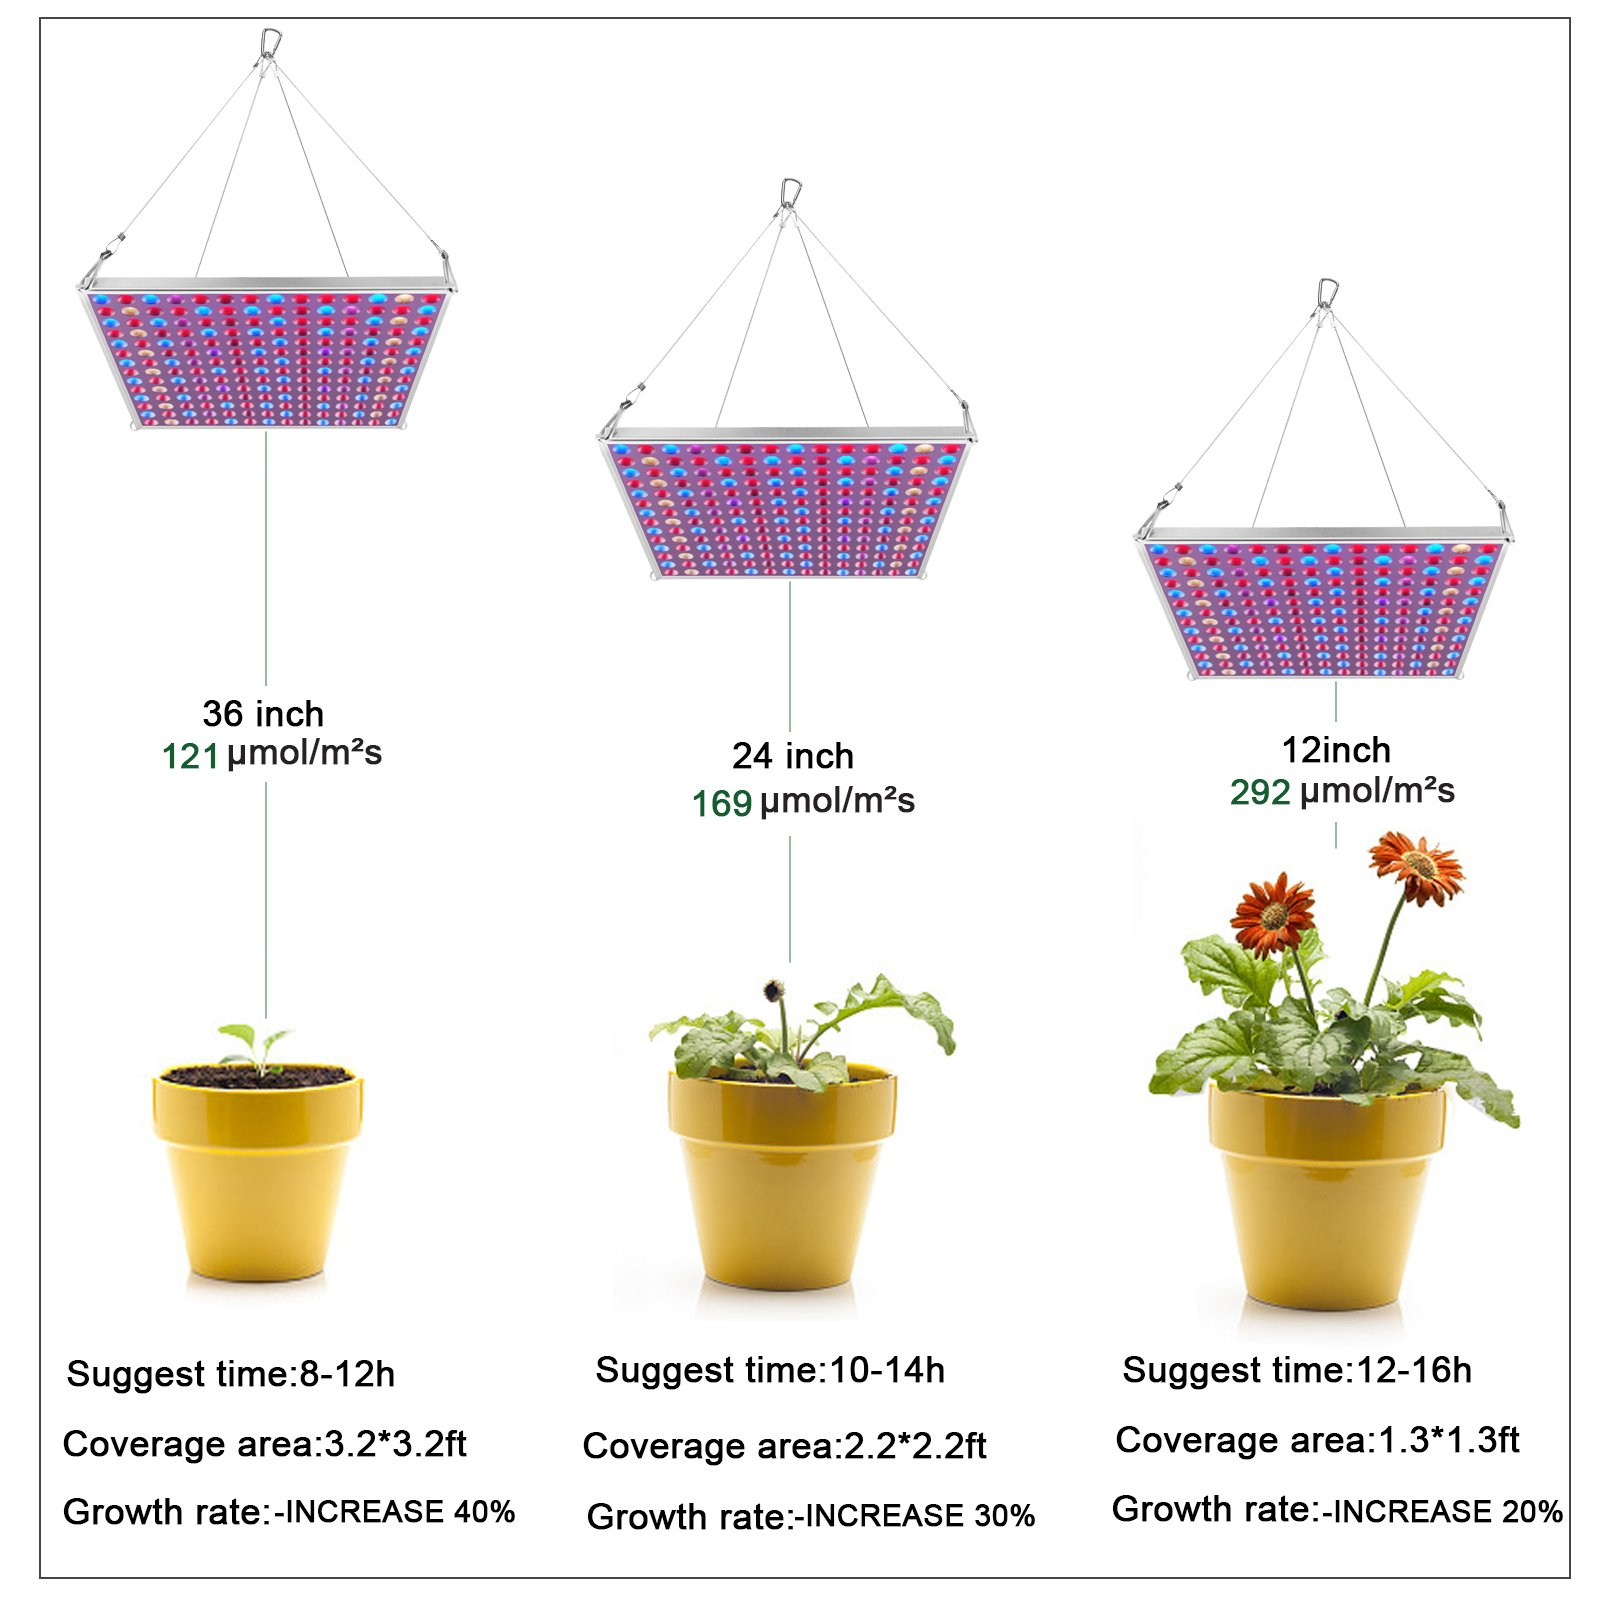 LED Grow Light for Indoor Plants,YGROW Upgraded 75W Growing Lamp Light Bulbs with Exclusive Full Spectrum for Greenhouse Hydroponic Plants from Seeding to Harvest by YGROW (Image #3)